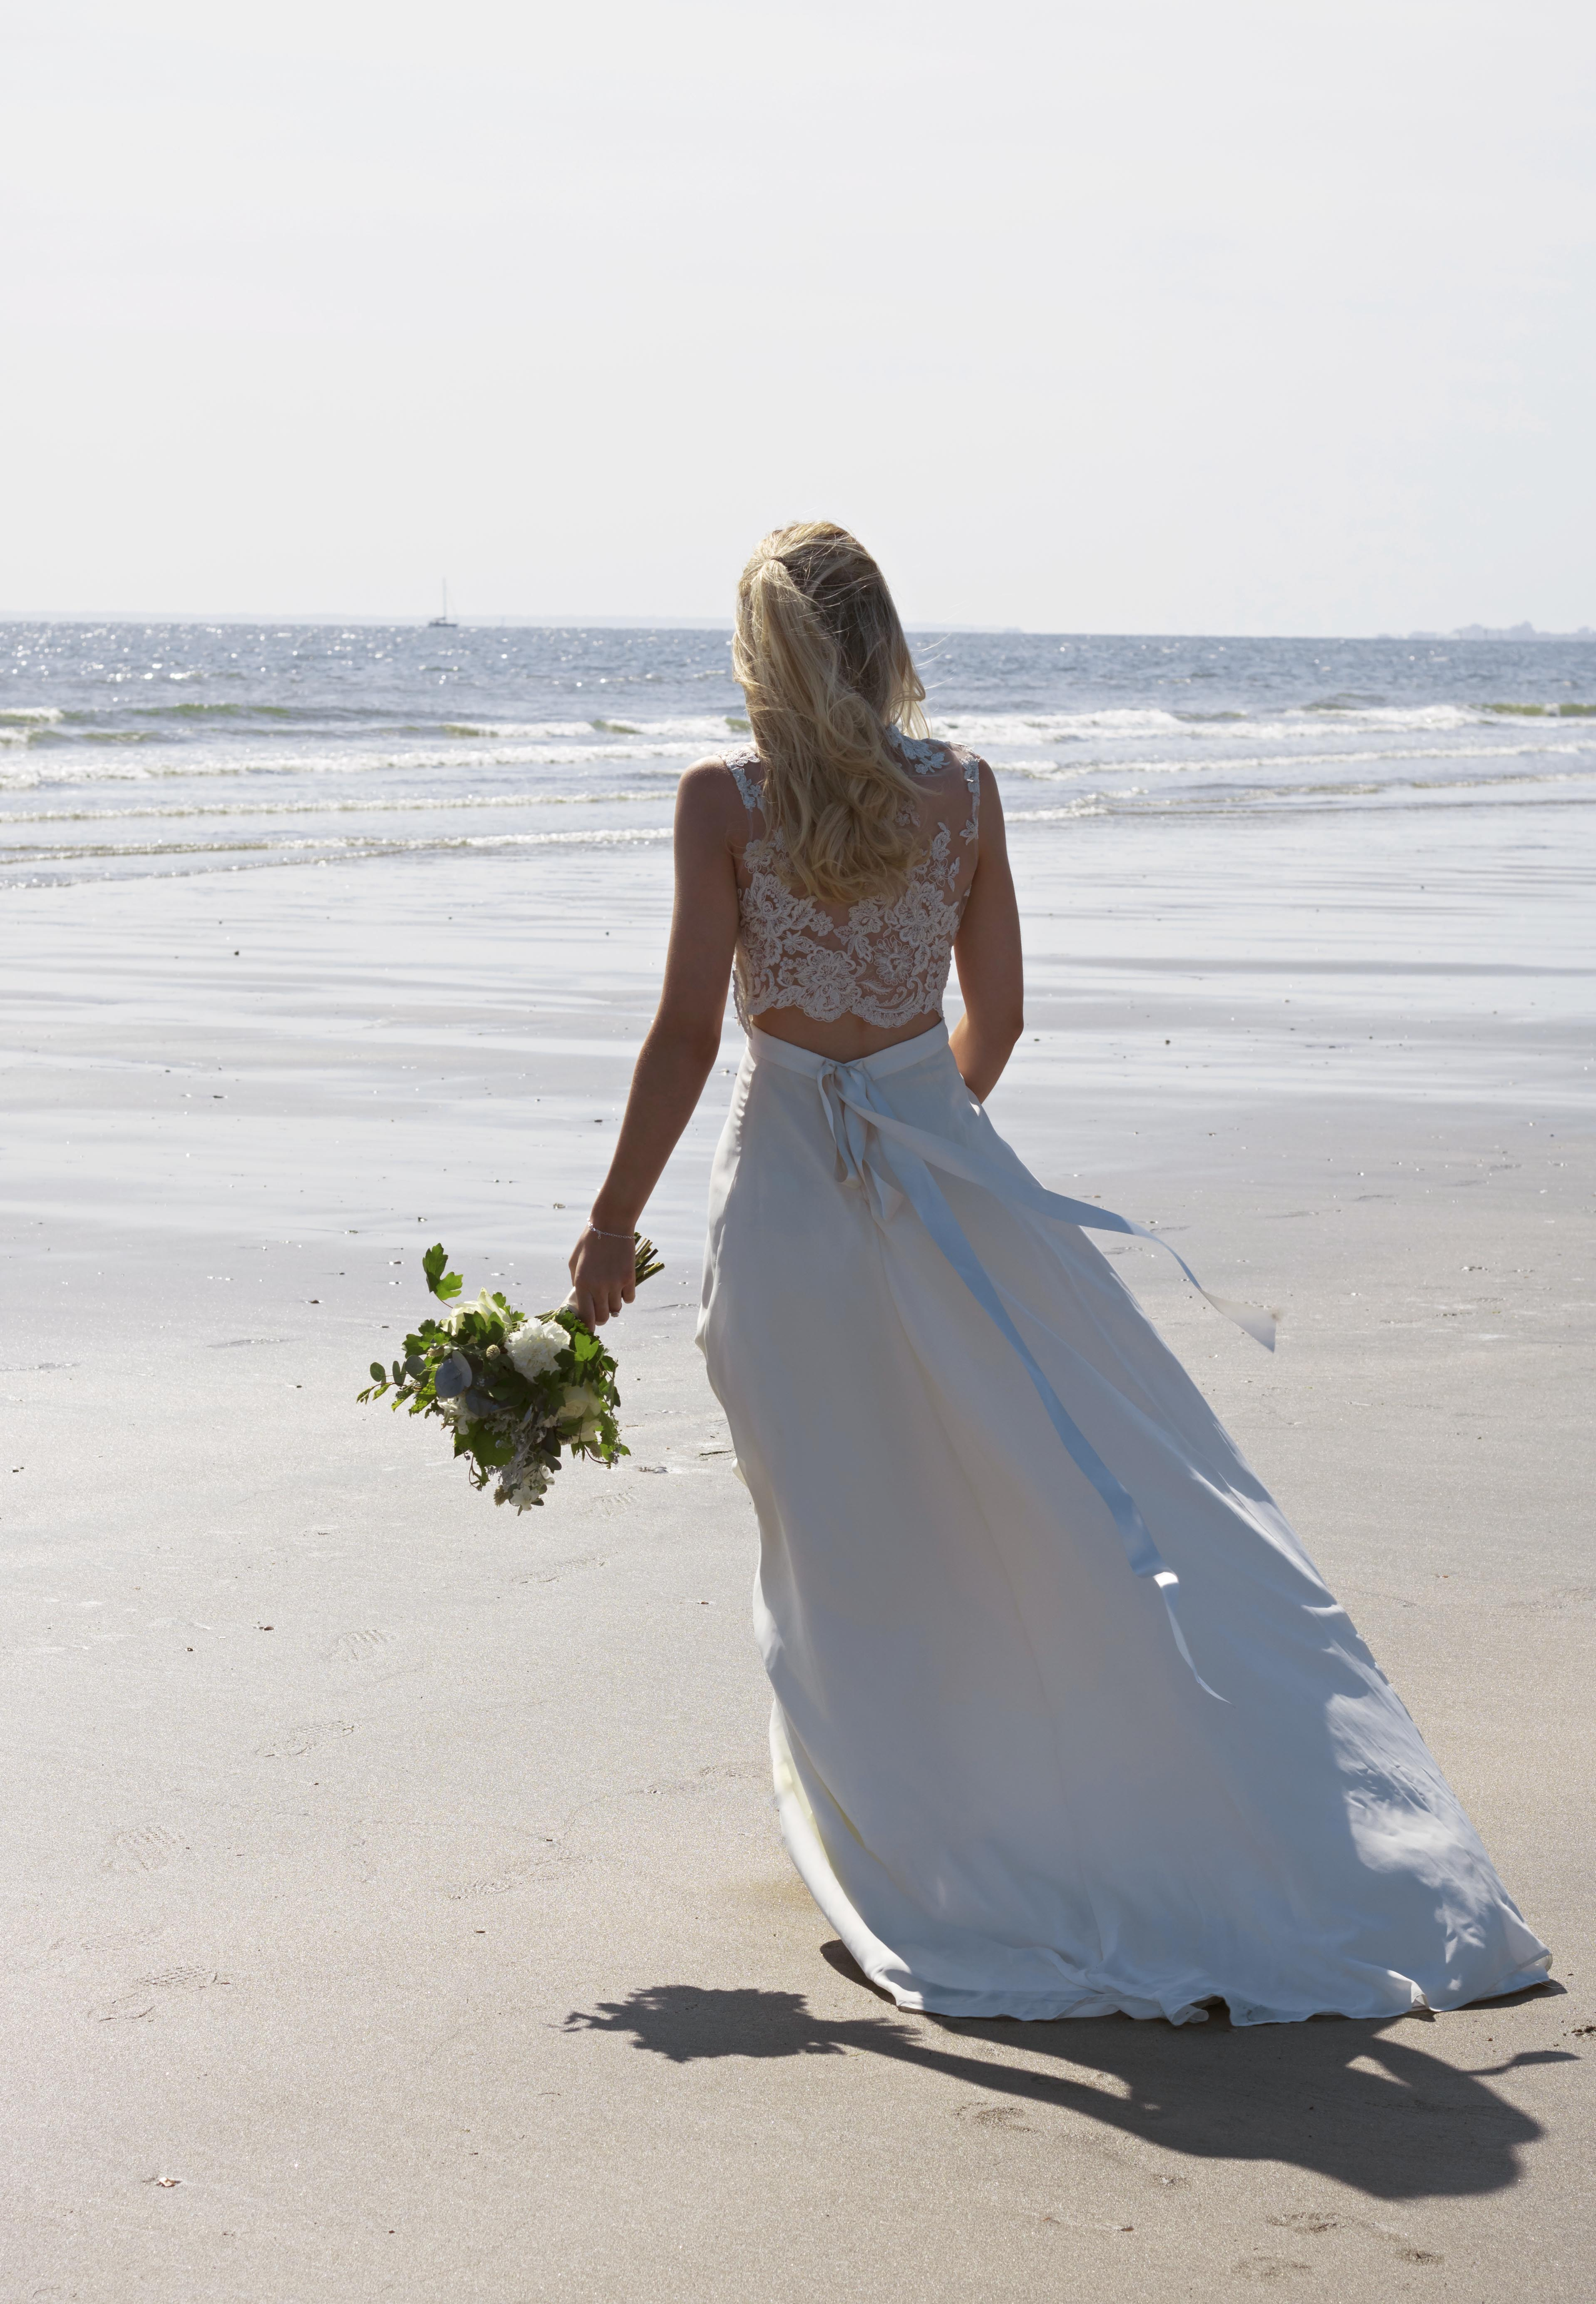 Stunning Bridal Shots at the Beach